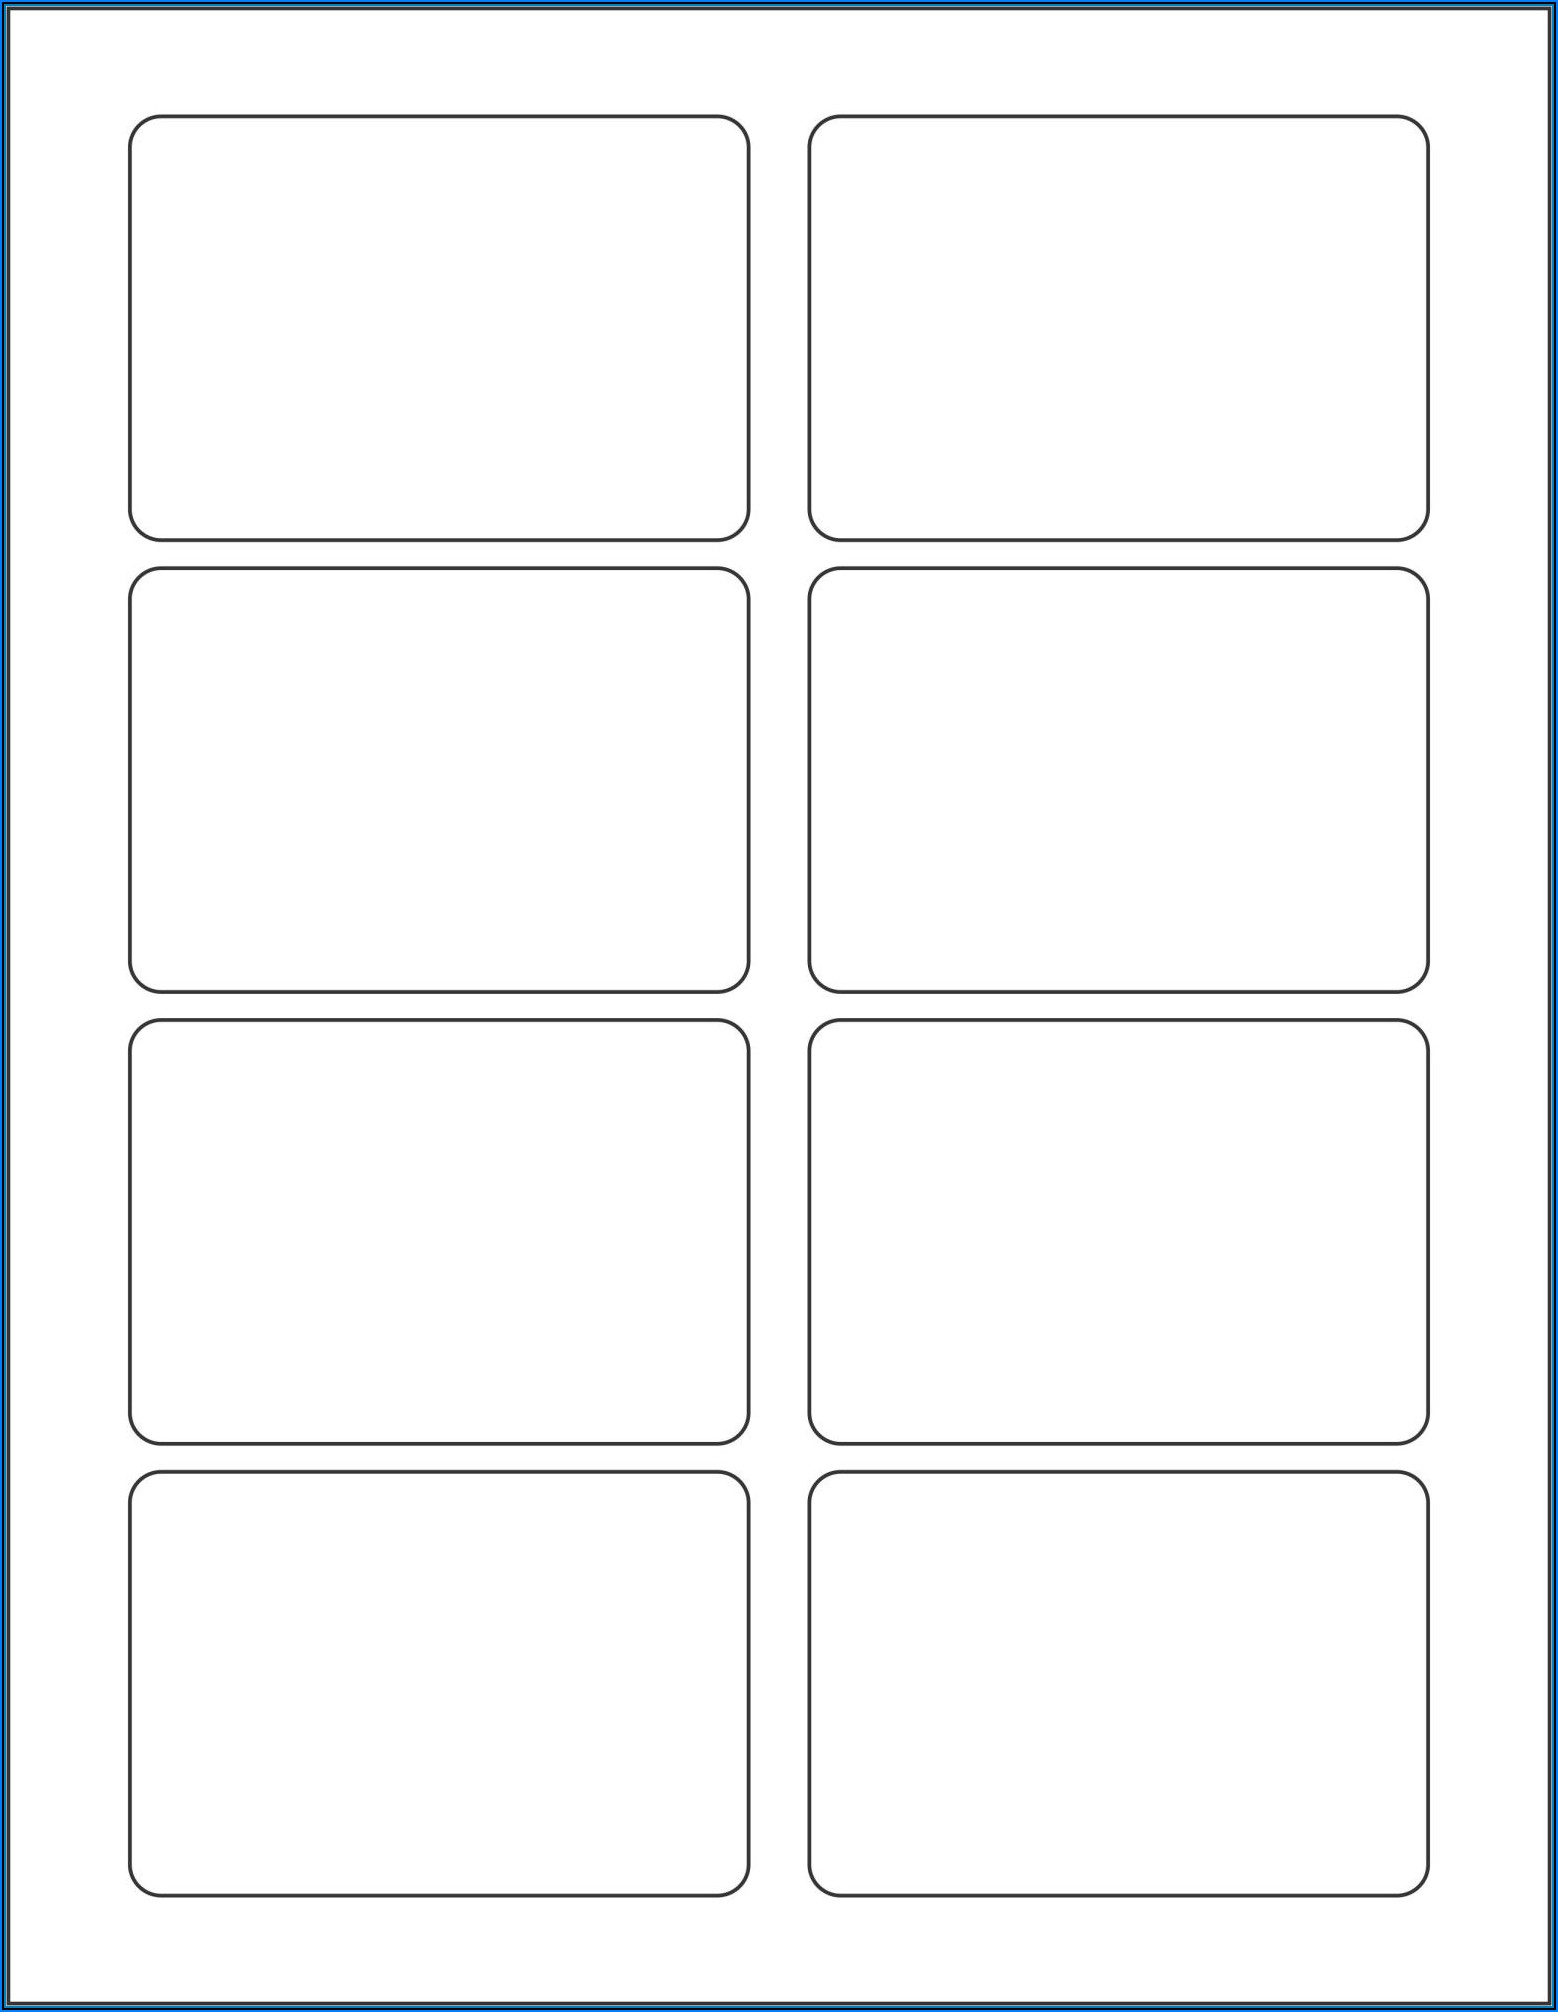 3 X 34 Label Template